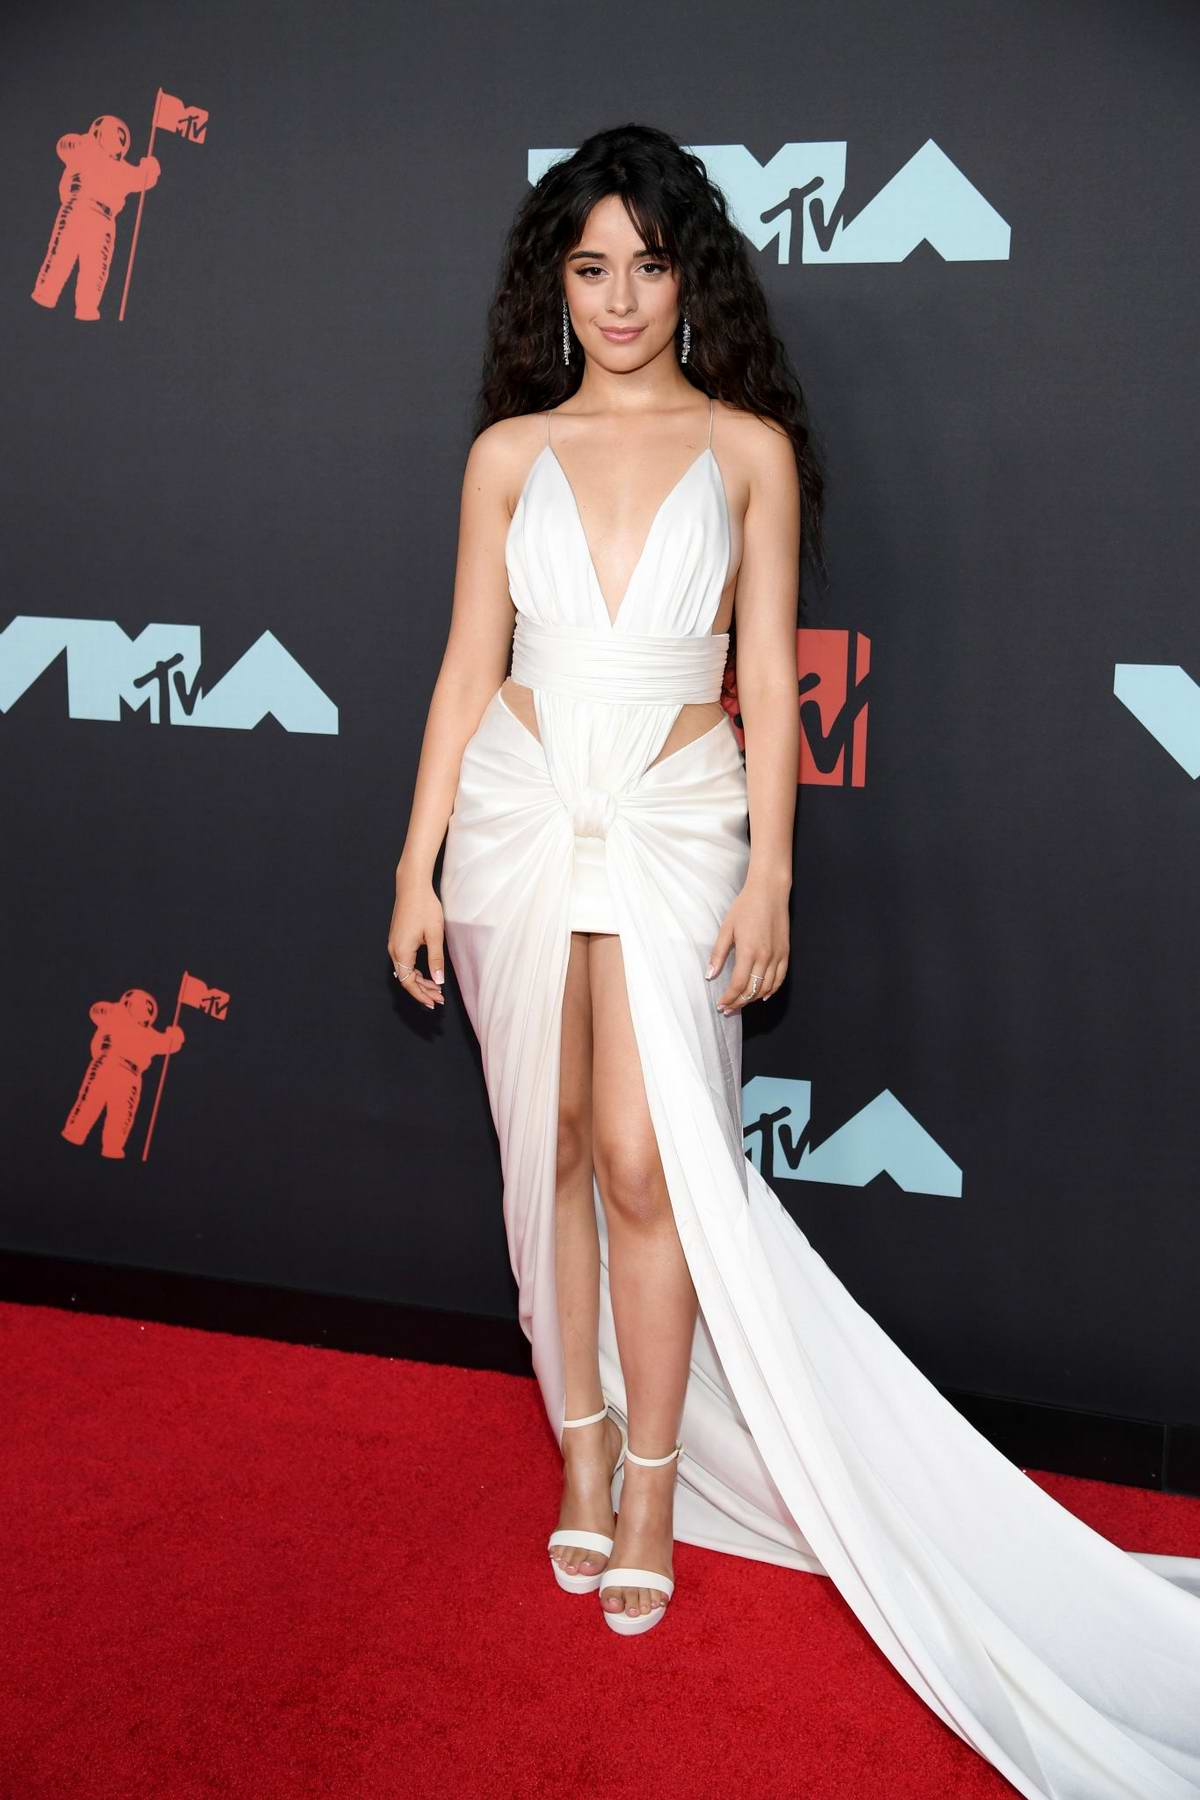 Camila Cabello attends the 2019 MTV Video Music Awards at Prudential Center in Newark, New Jersey